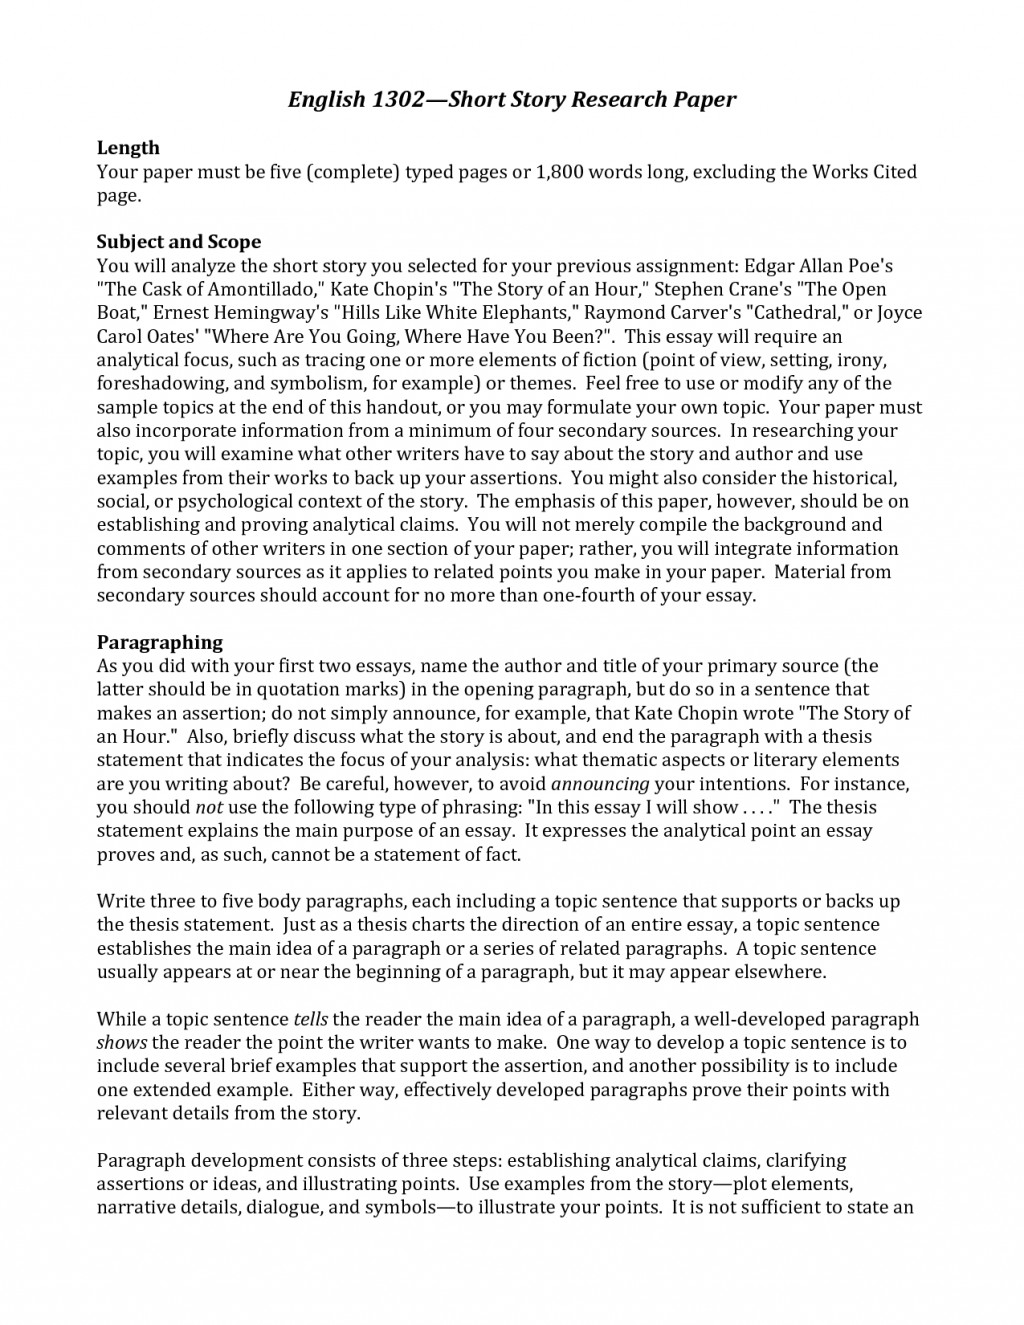 002 Ideas For Research Fascinating Paper Papers In Economics High School College Large